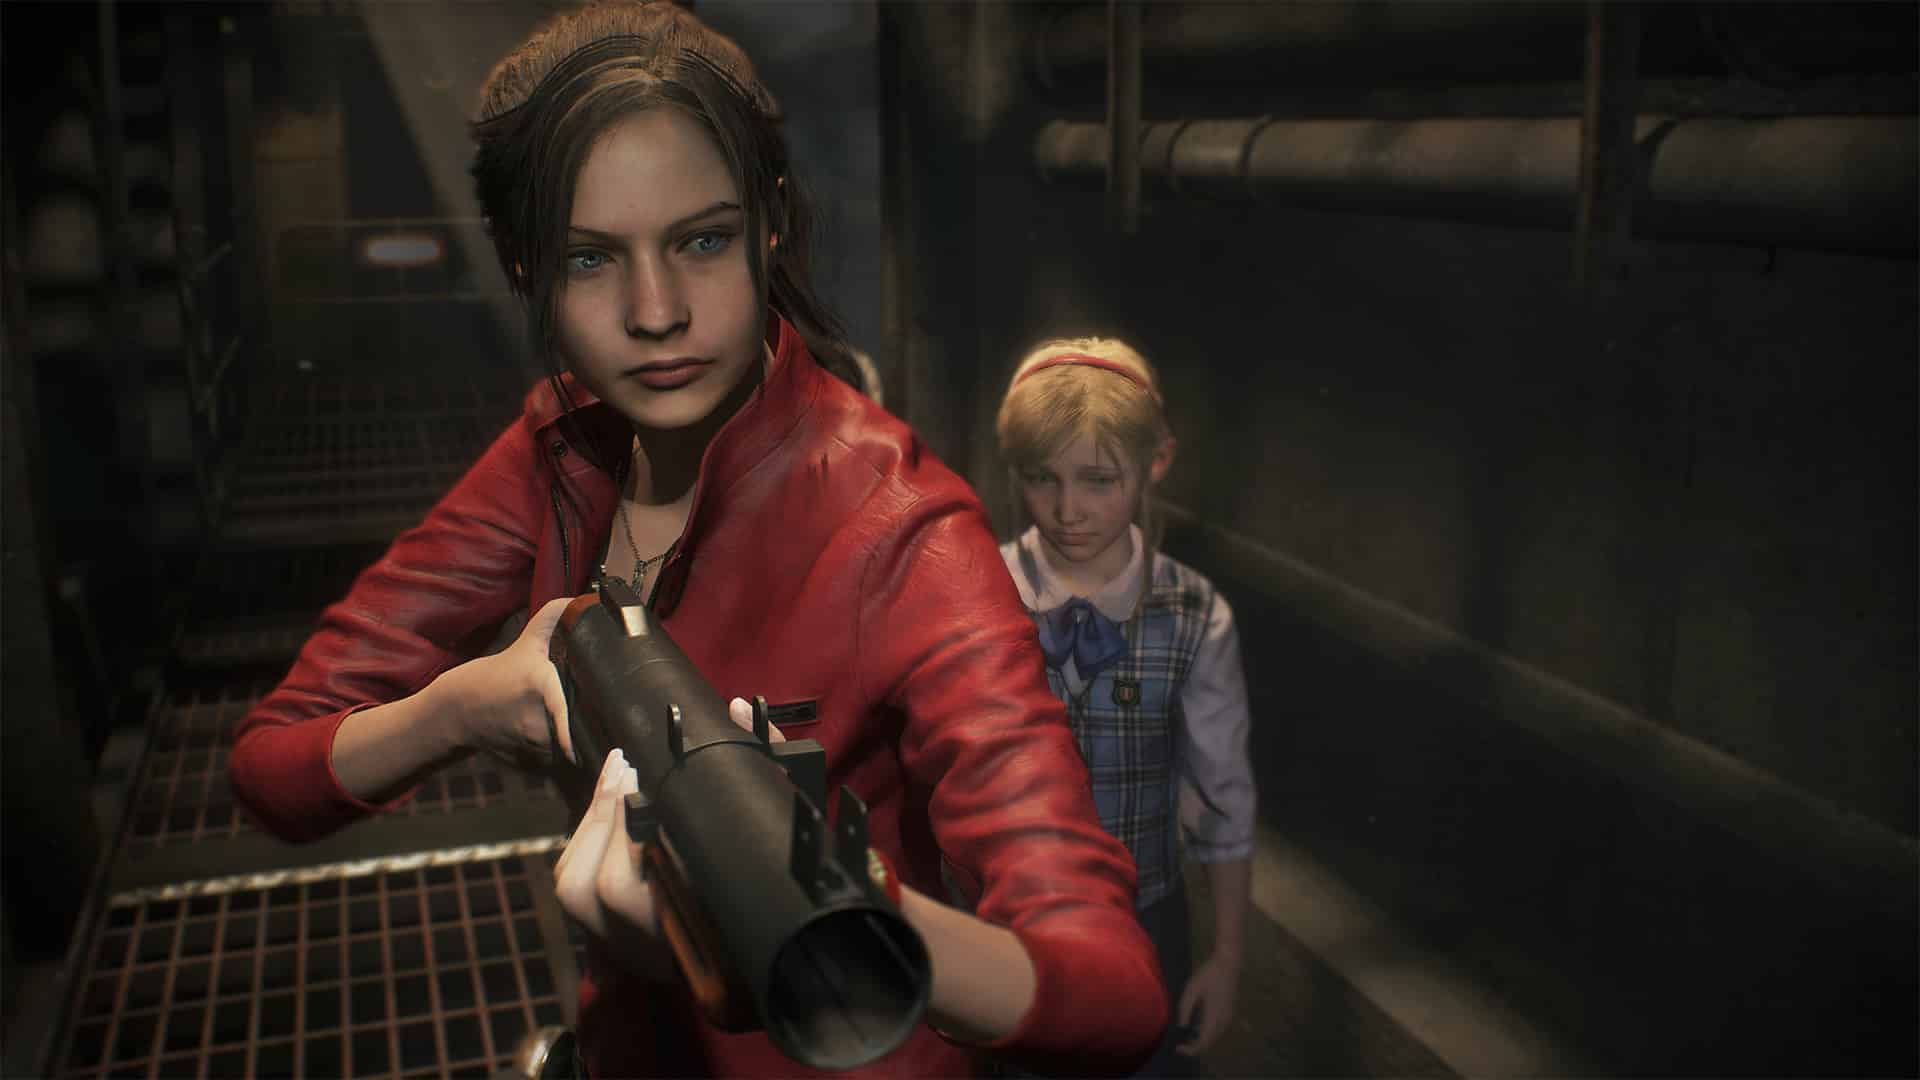 Claire Redfield Sherry Birkin Capcom Resident Evil 2 remake cheat the undead zombies until Mr. X shows up